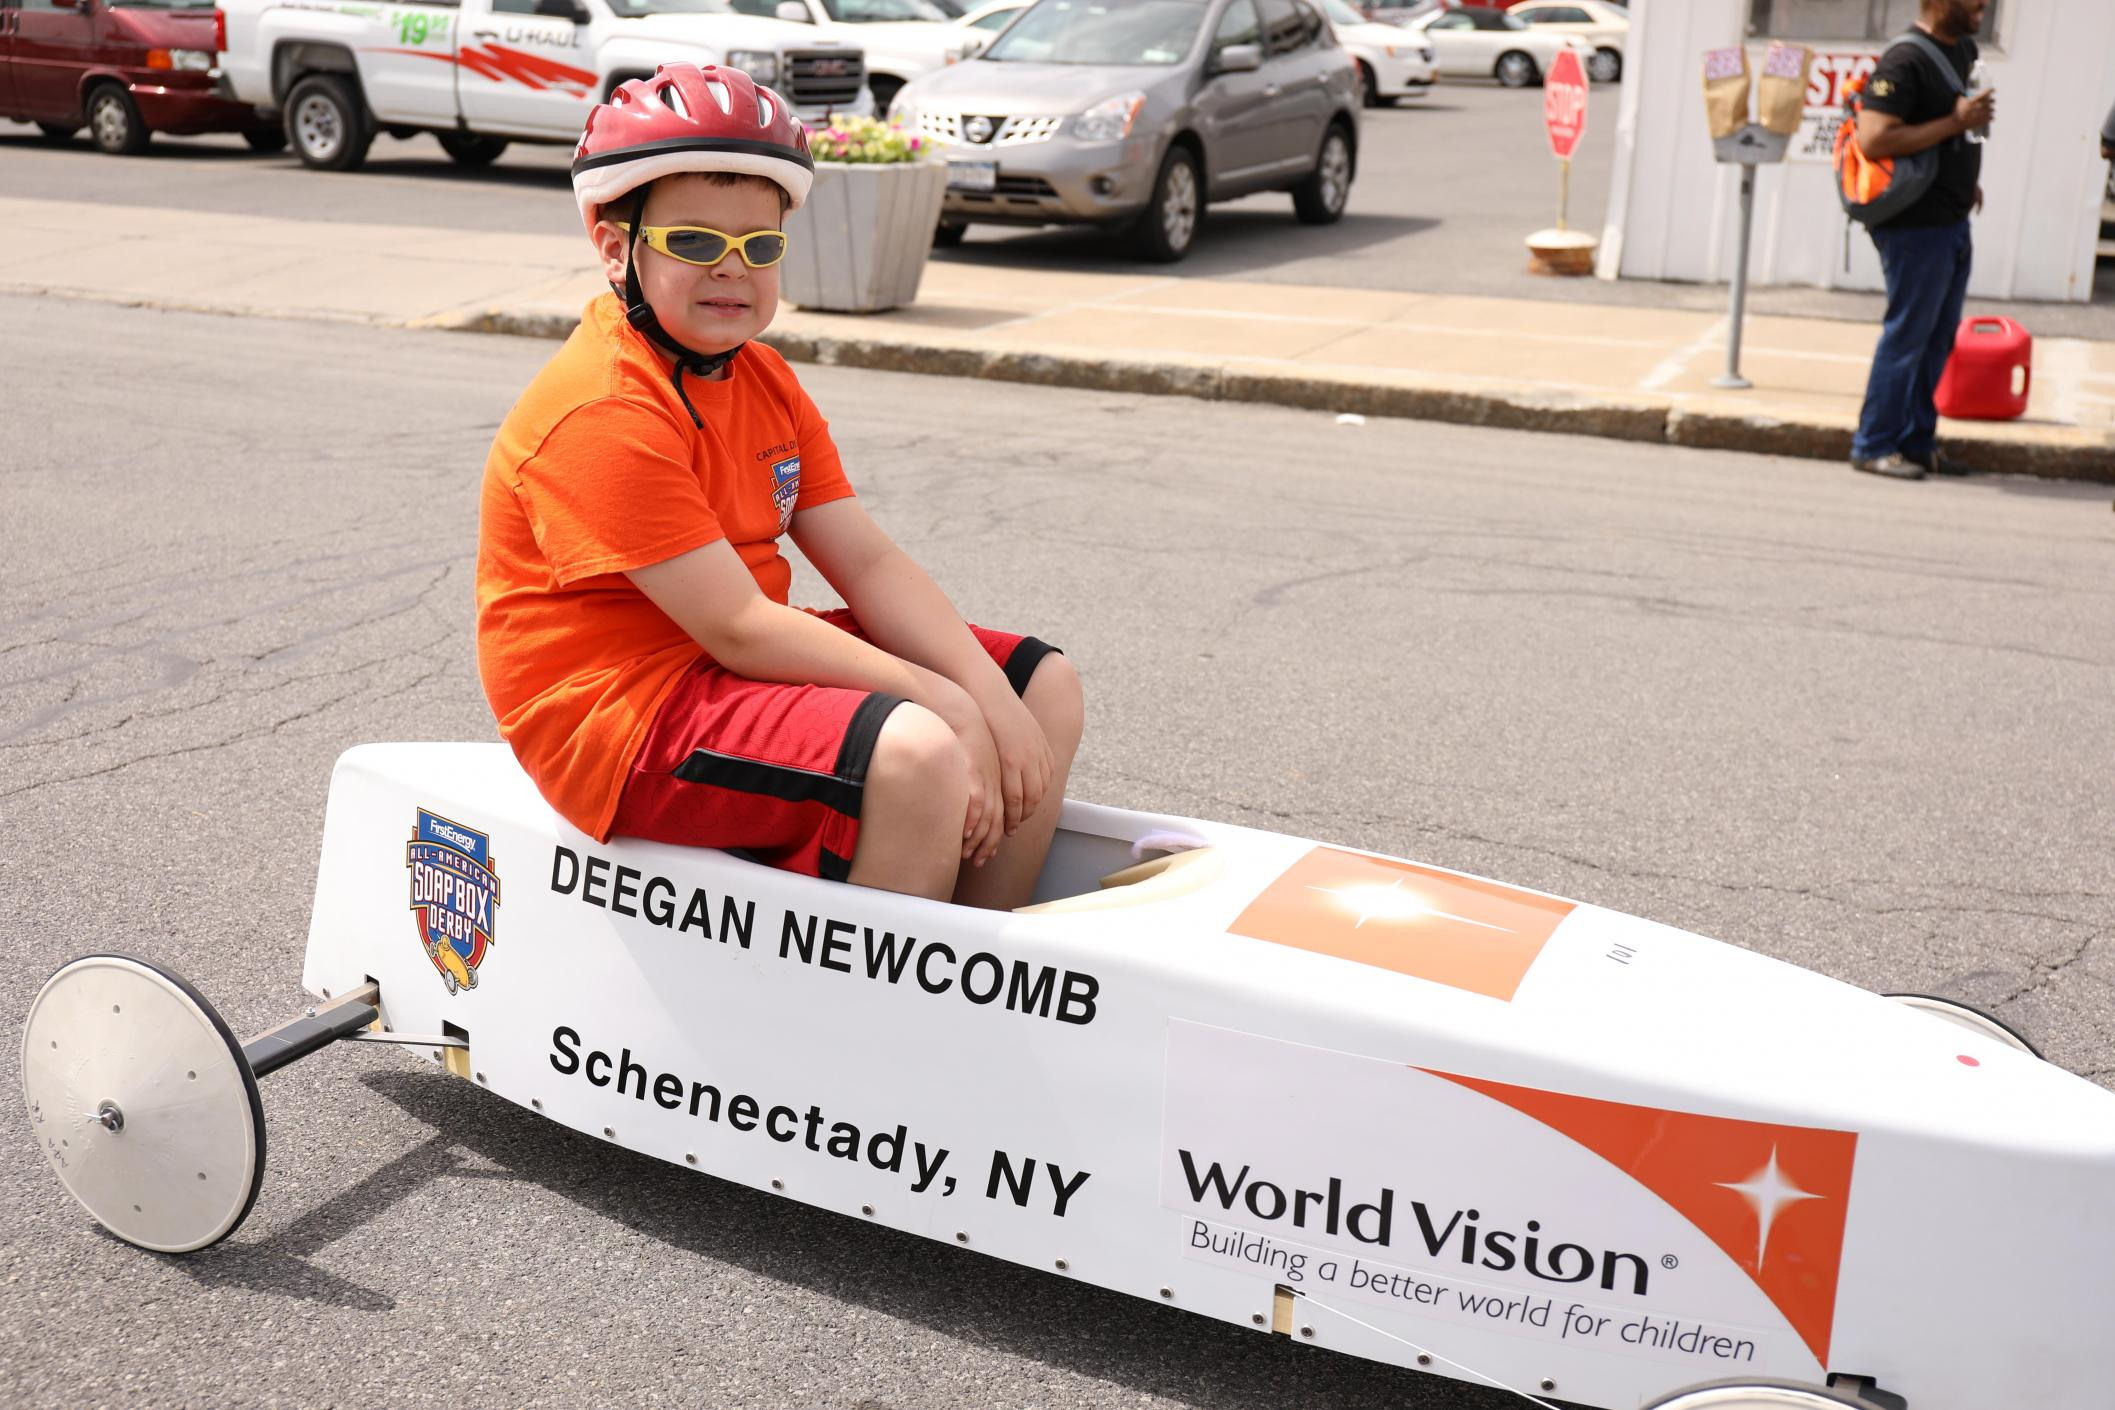 4th grader sits in his soap box derby car wearing a helmet and glasses